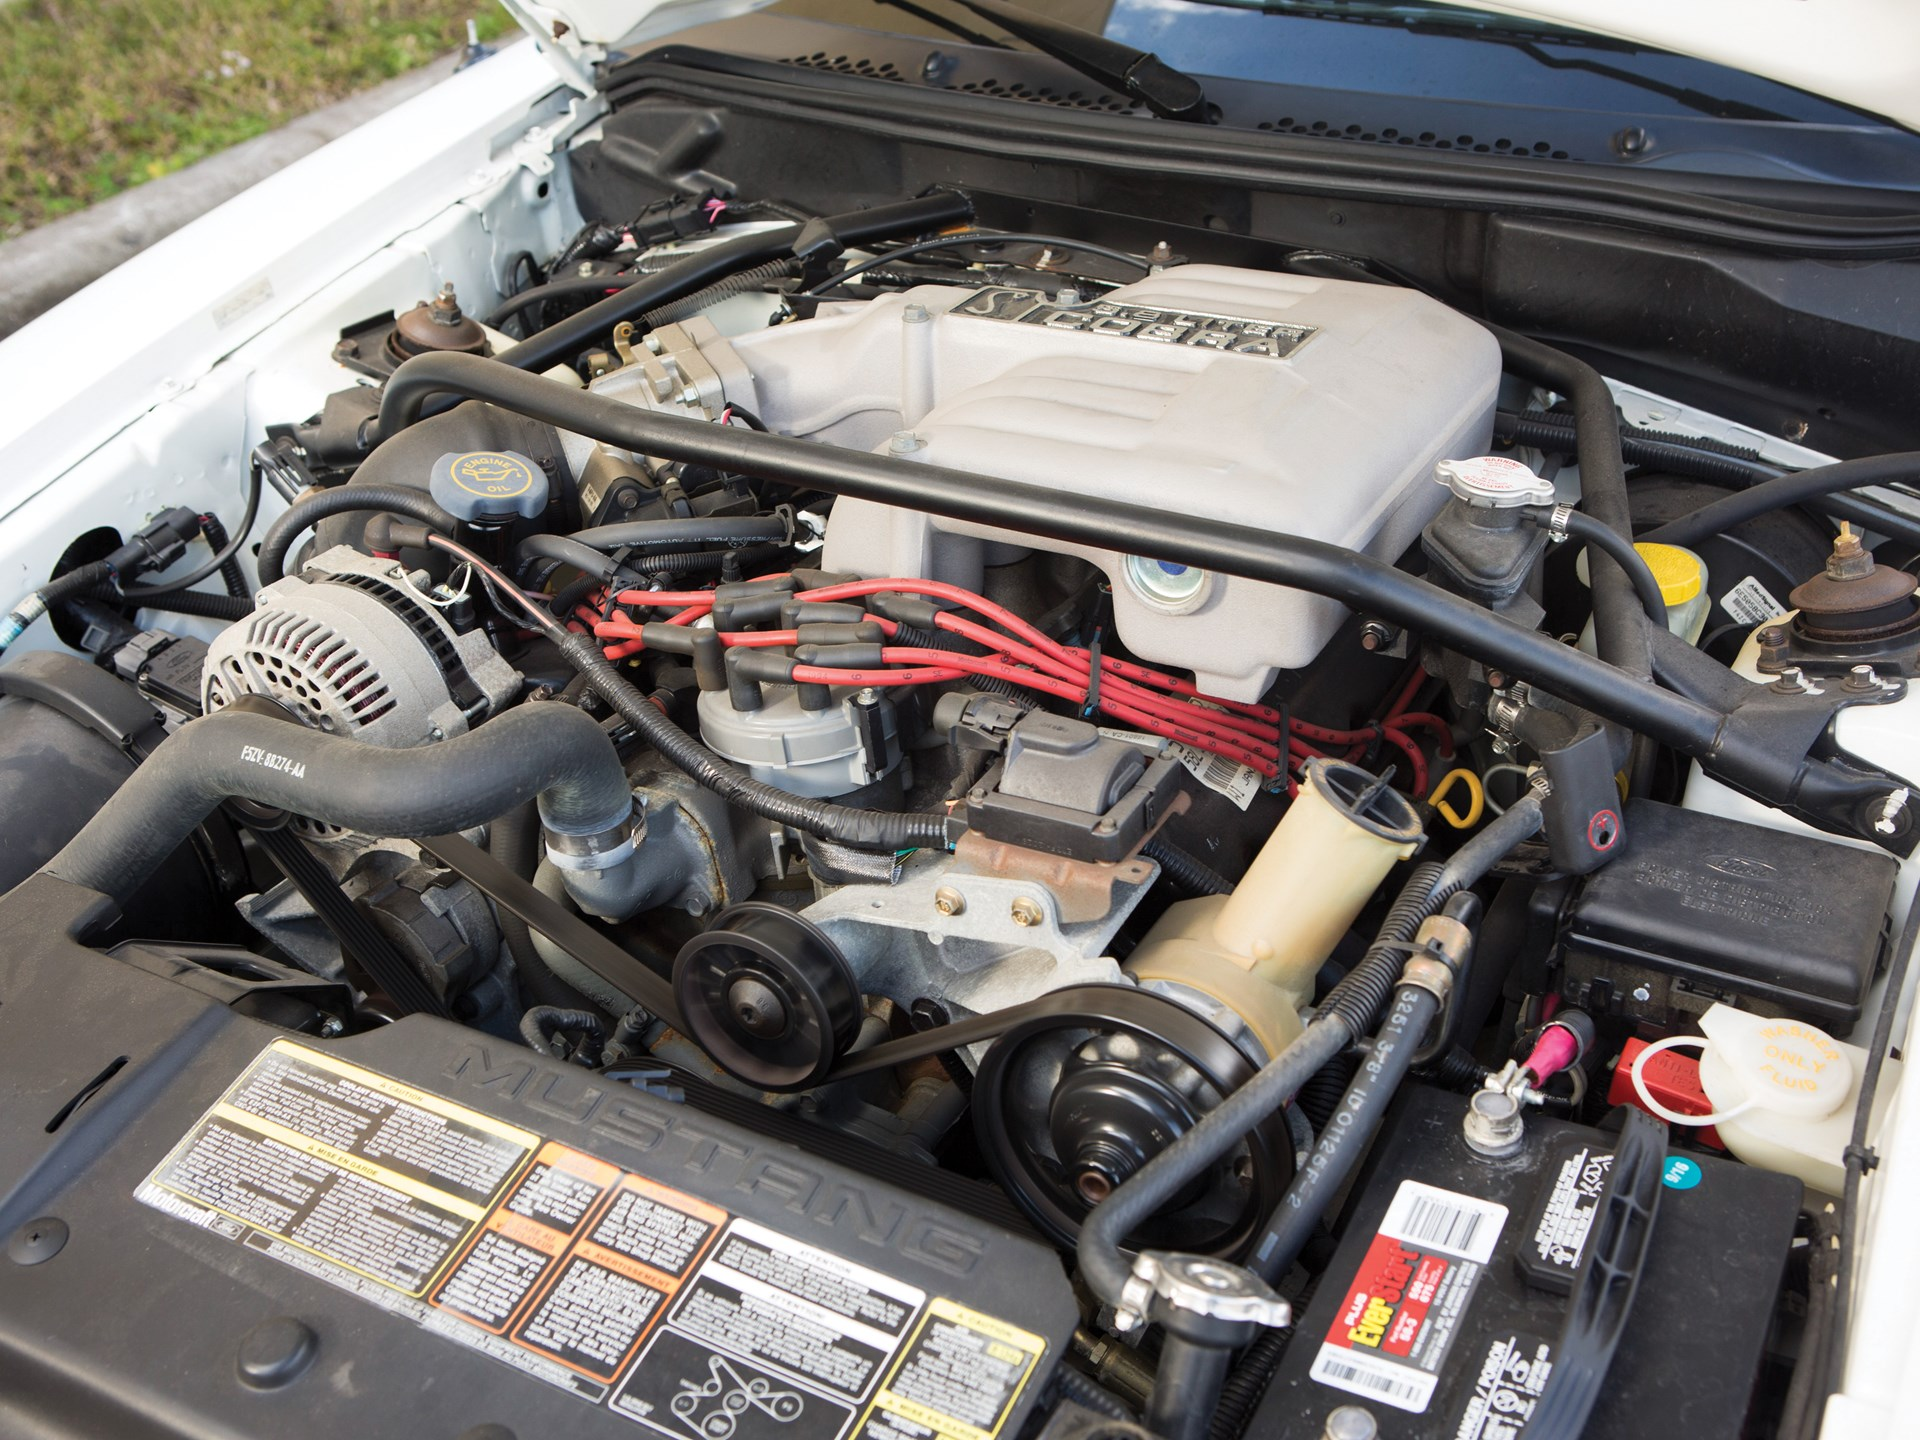 1995 Ford Mustang SVT Cobra R engine 5.8 liter